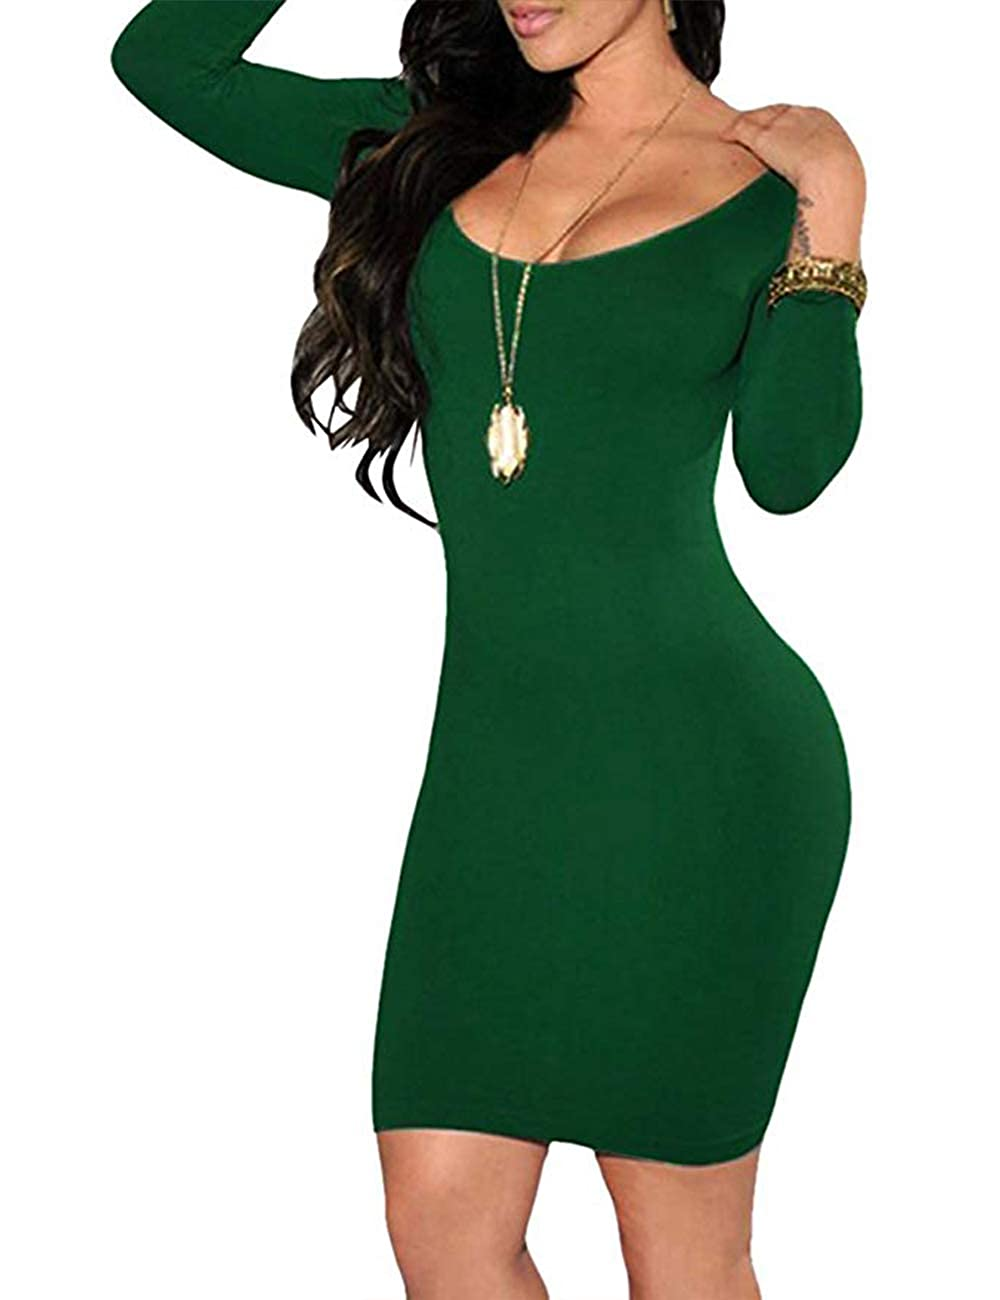 Dark Green Haola Women's Scoop Neck Long Sleeve Dress Pencil Bodycon Stretch Midi Party Dress